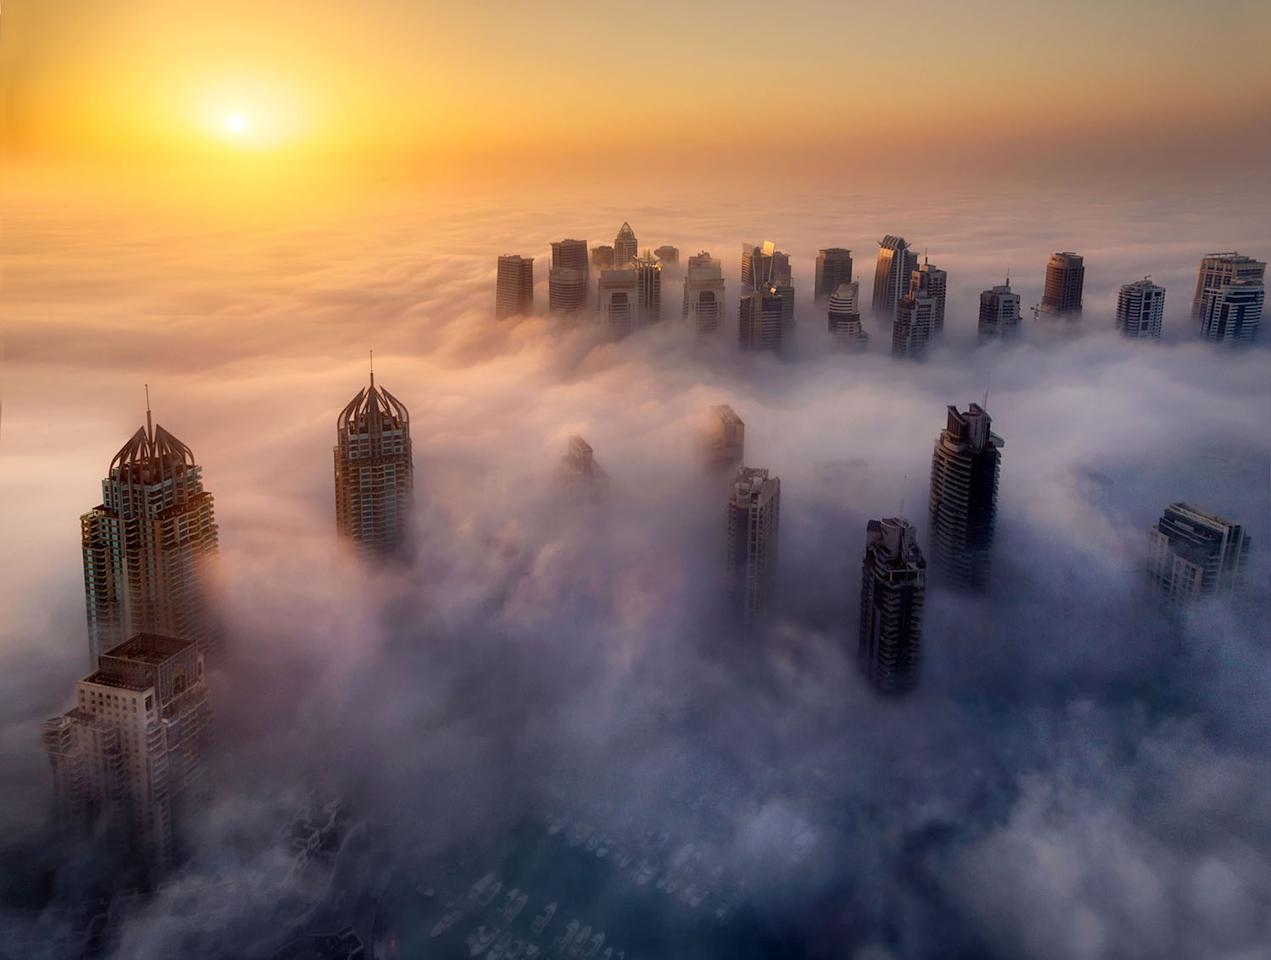 <p>Thick fog rolls into Dubai in the early hours of the day. (Photo: Rustam Azmi/Caters News) </p>